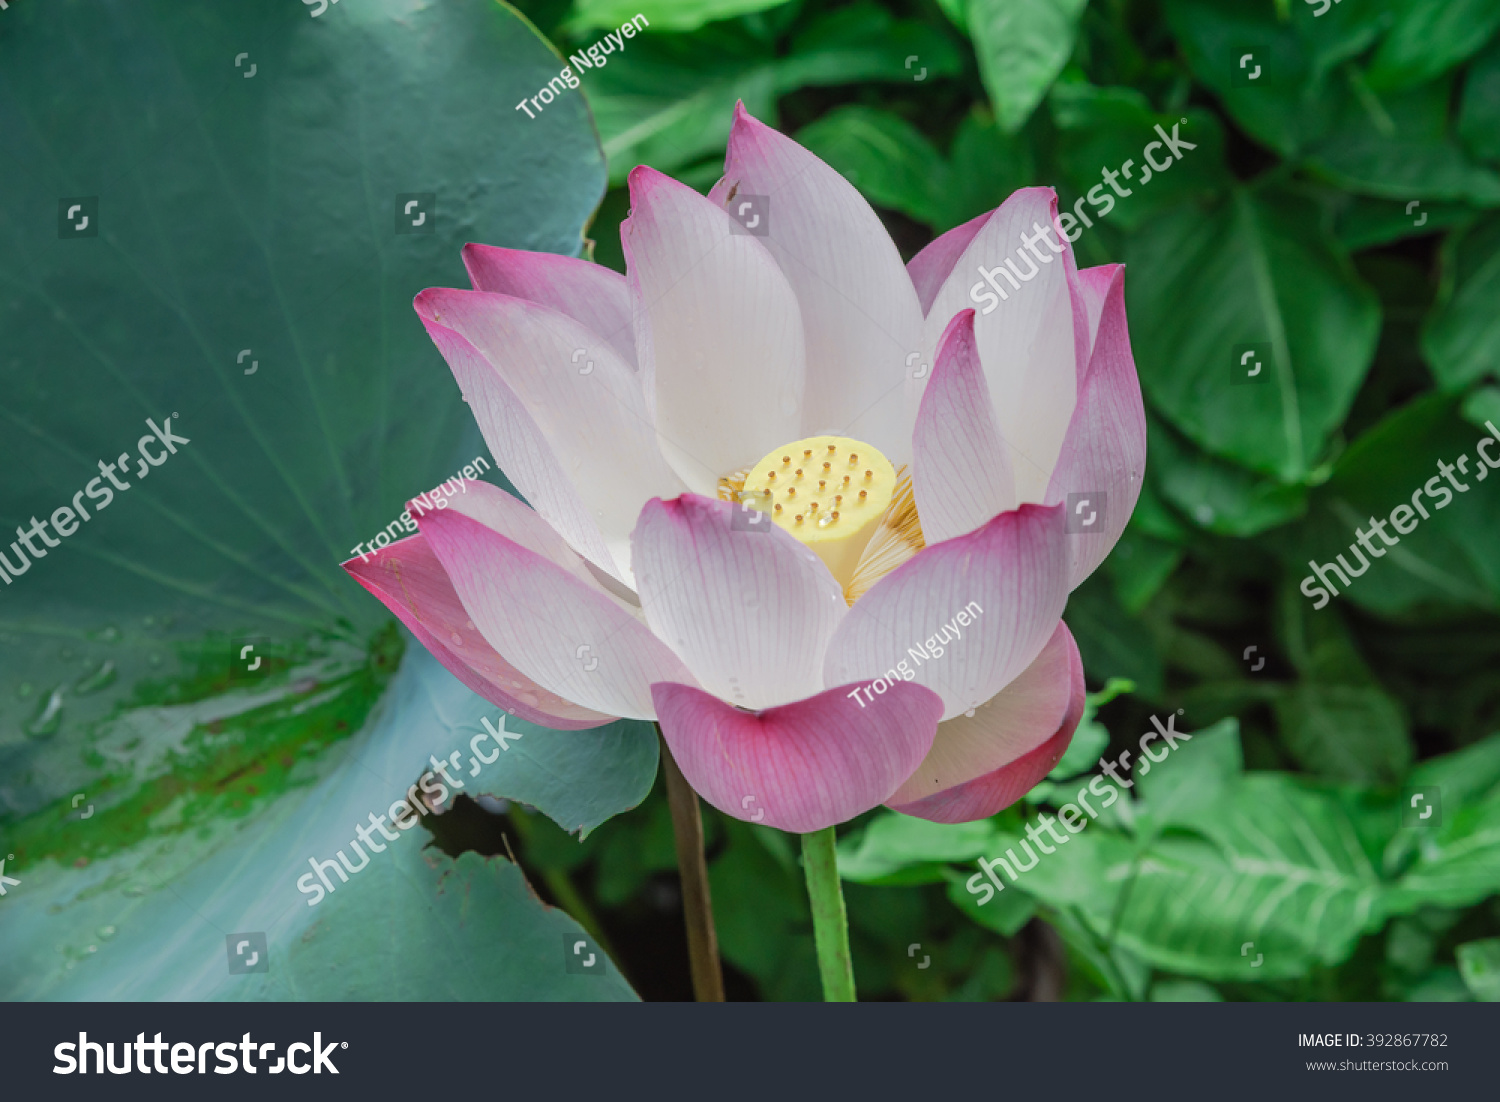 Close up view blooming pink lotus flower or nelumbo nucifera gaertn id 392867782 izmirmasajfo